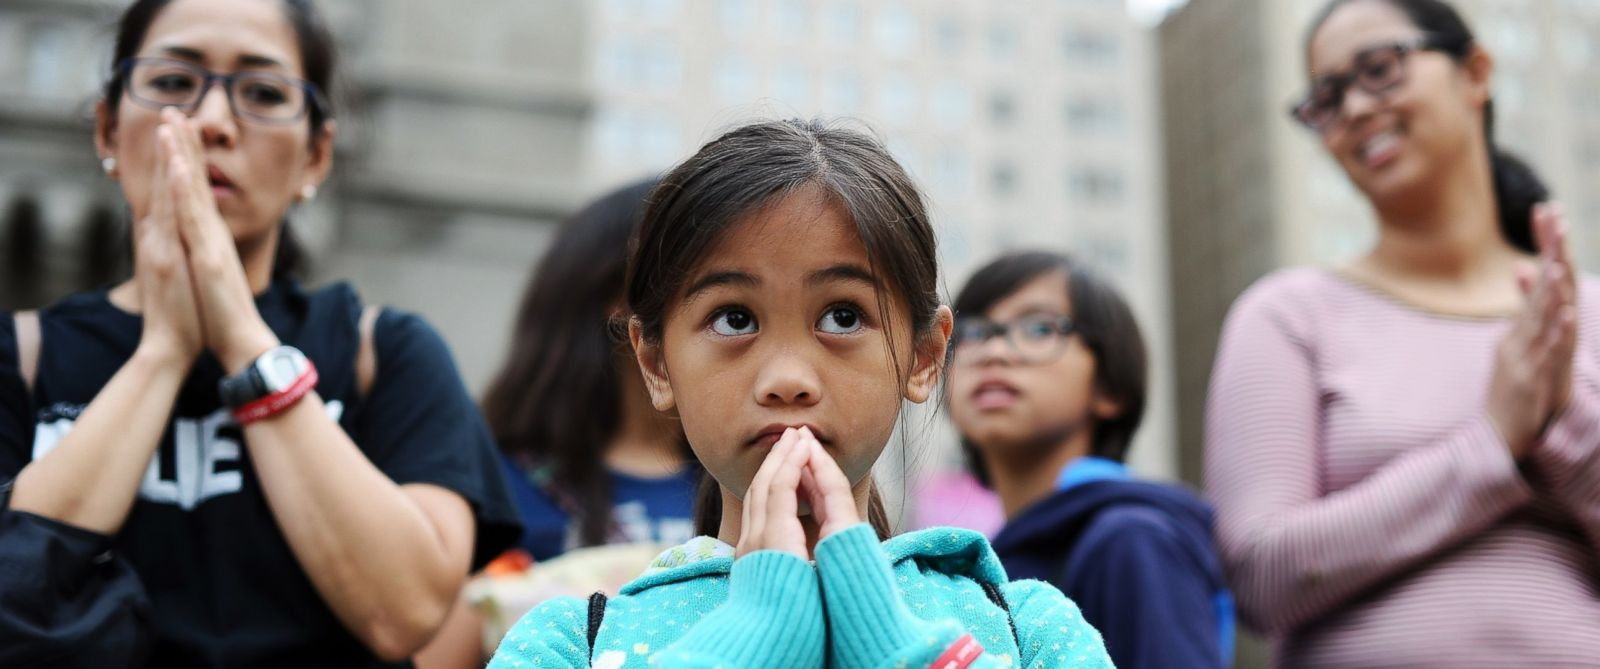 PHOTO: Faithful patrons attend an open-air mass celebrated by Pope Francis at the Benjamin Franklin Parkway in Philadelphia on Sept. 27, 2015.